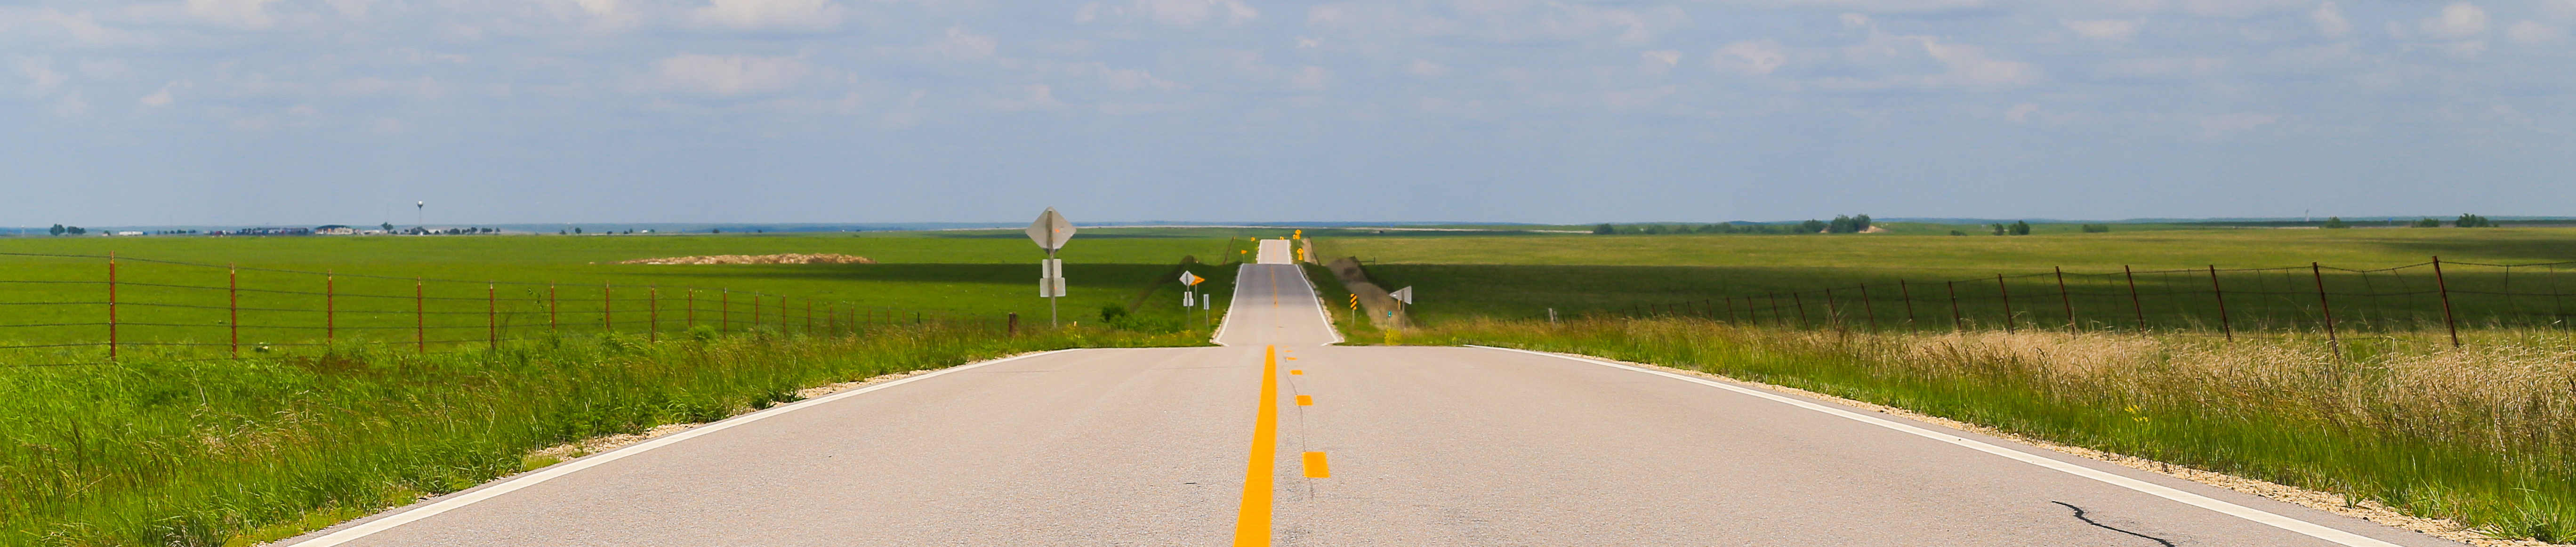 Pictured: Kansas road in the plains with green grass.